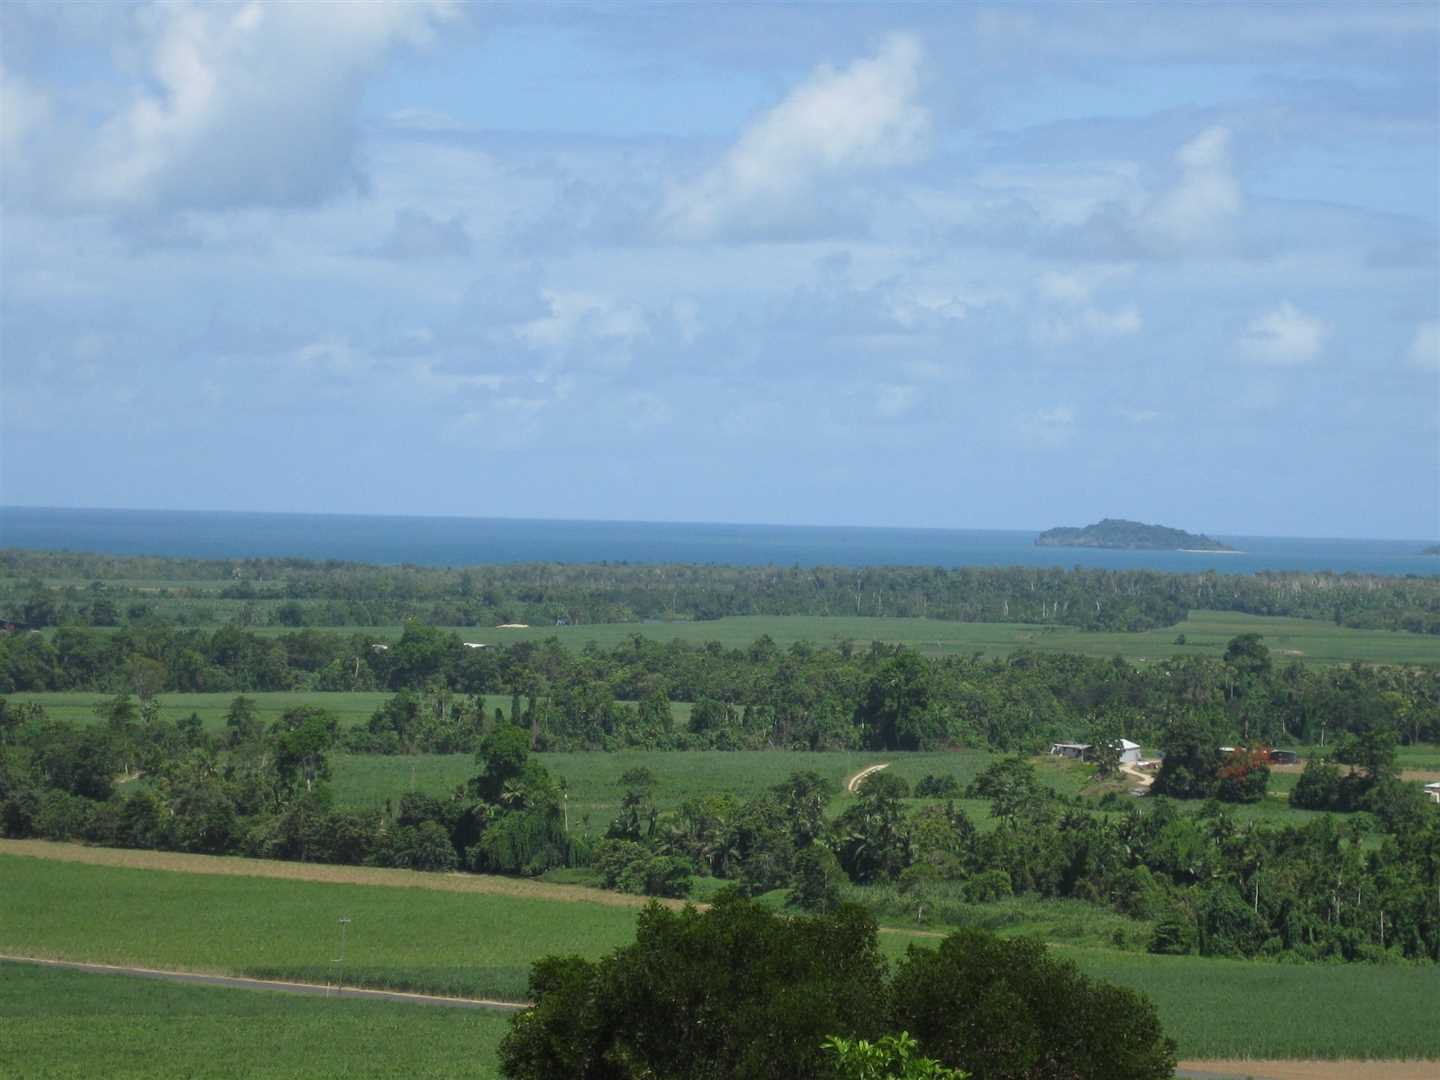 View of part of the Coral Sea and an Island from the property (zoomed photo)